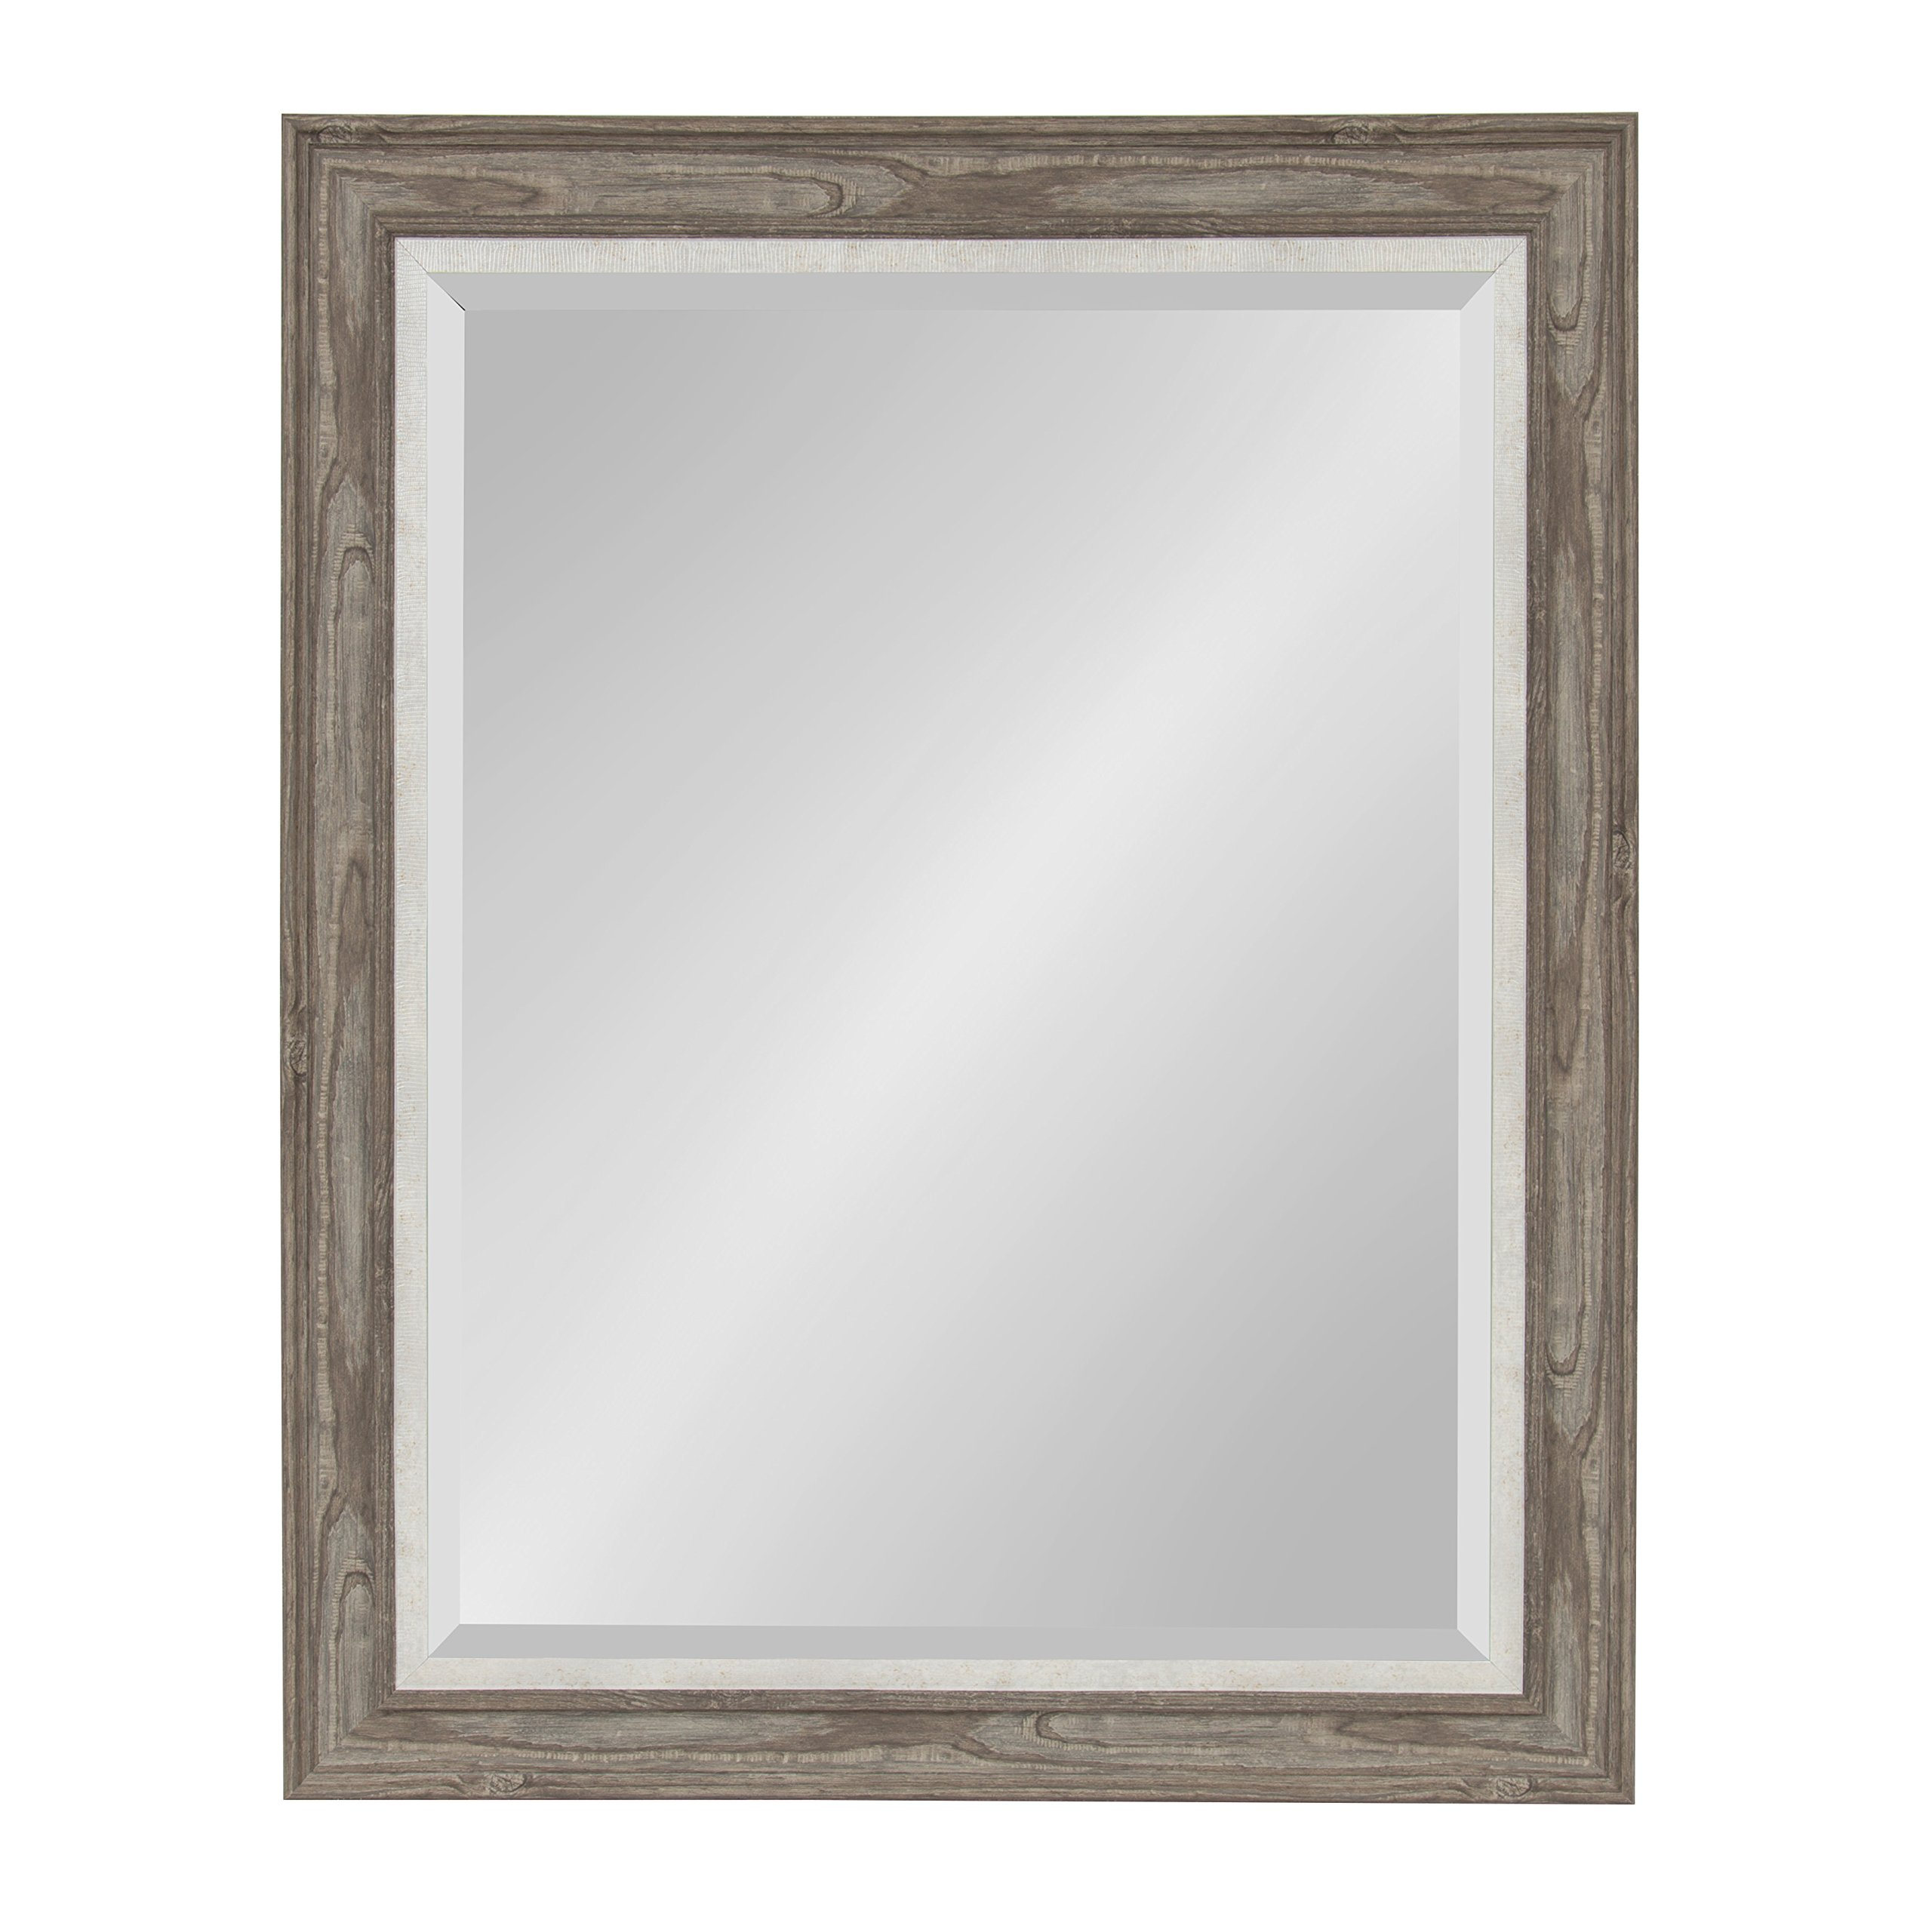 Kate and Laurel Woodway Large Framed Wall Mirror, 27.5 x 33.5 Inches, Rustic Gray